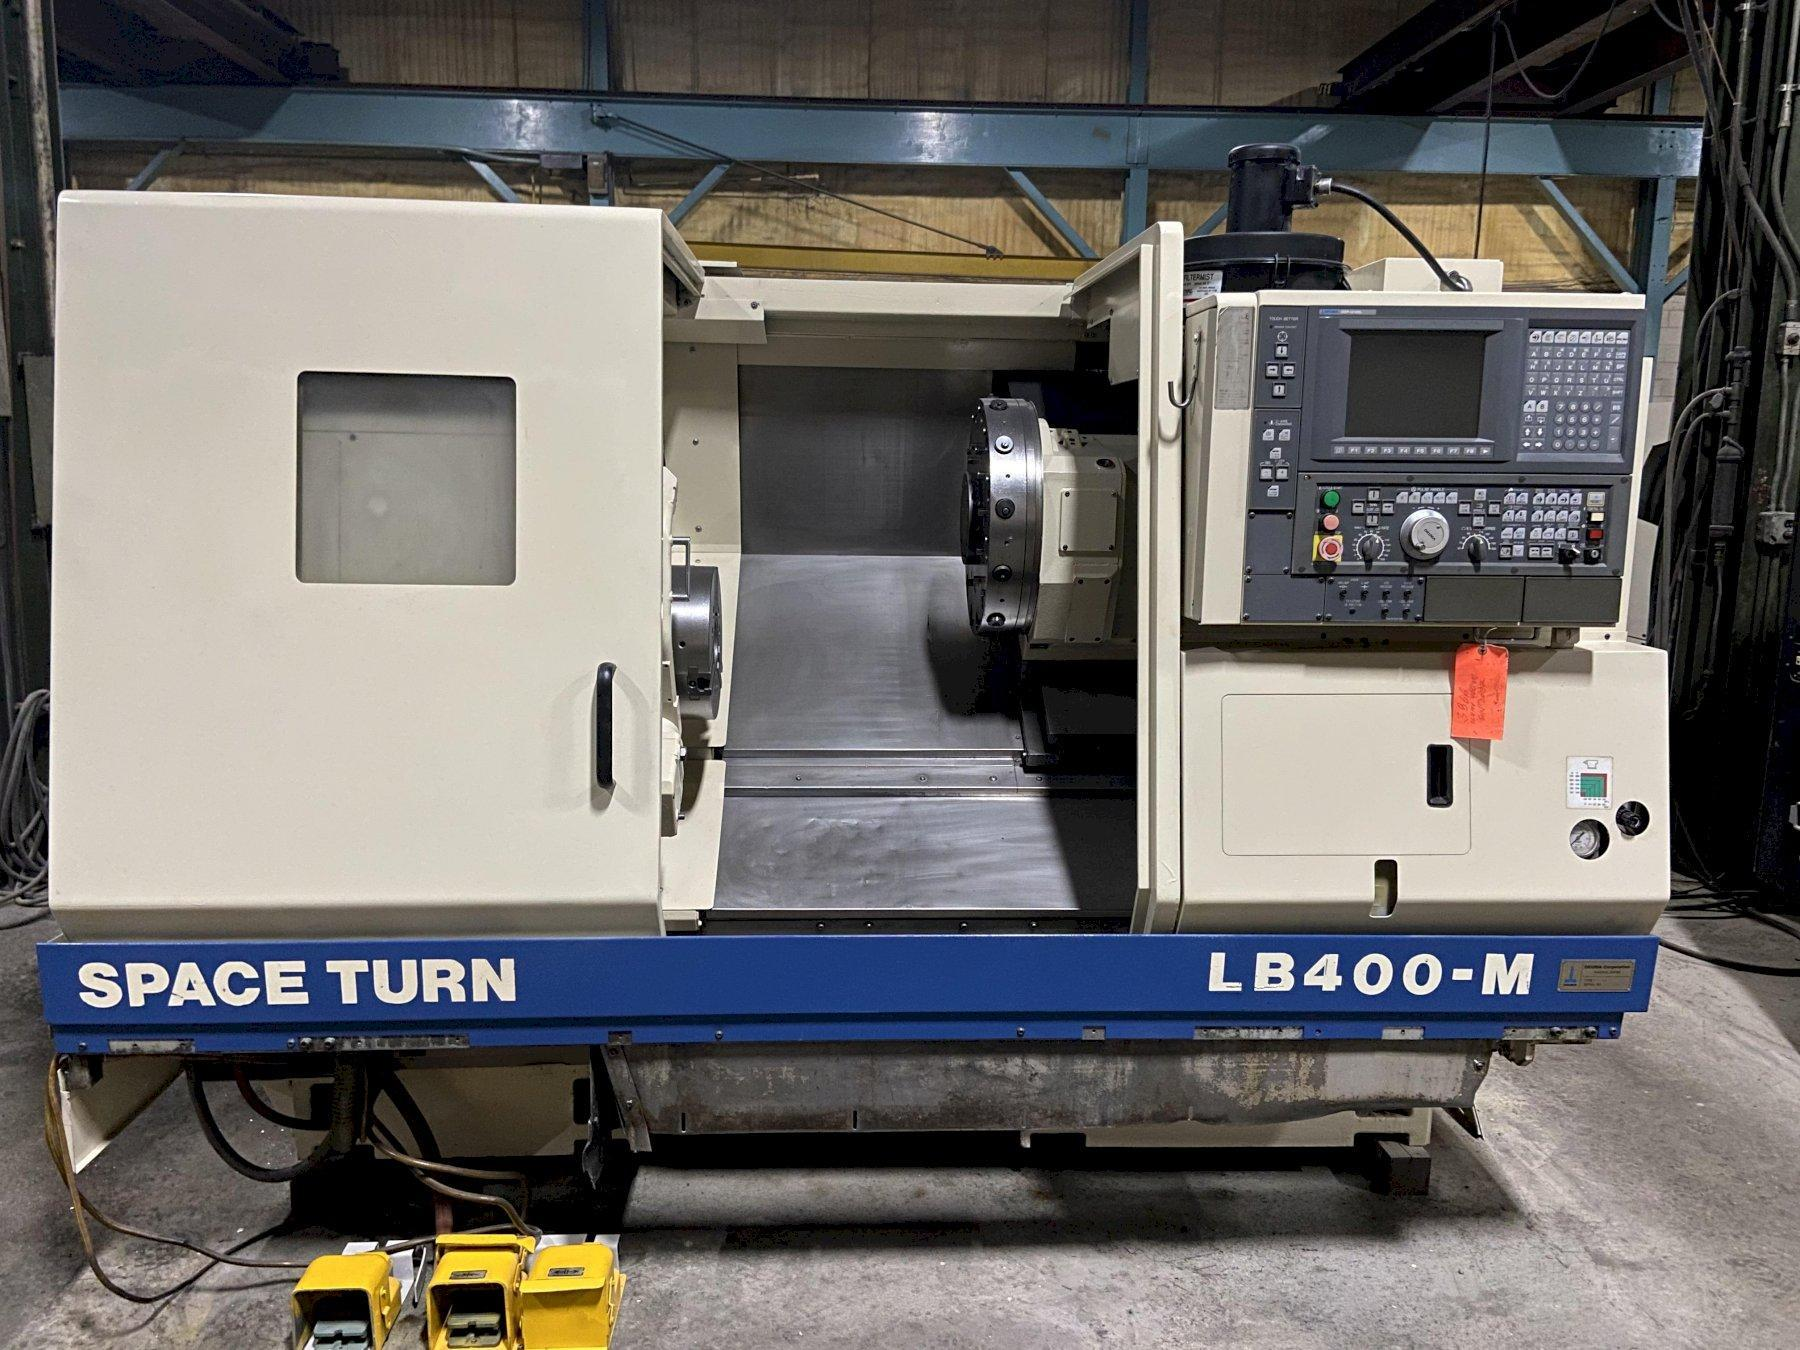 "Okuma LB400M CNC Lathe w/Milling, U100L Control, 12"" Chuck, 24.4"" Swing, 26"" Centers, 2.75"" Bar Capacity, 12 Position Turret, Probe, Tool Holders, Tailstock, 2000"